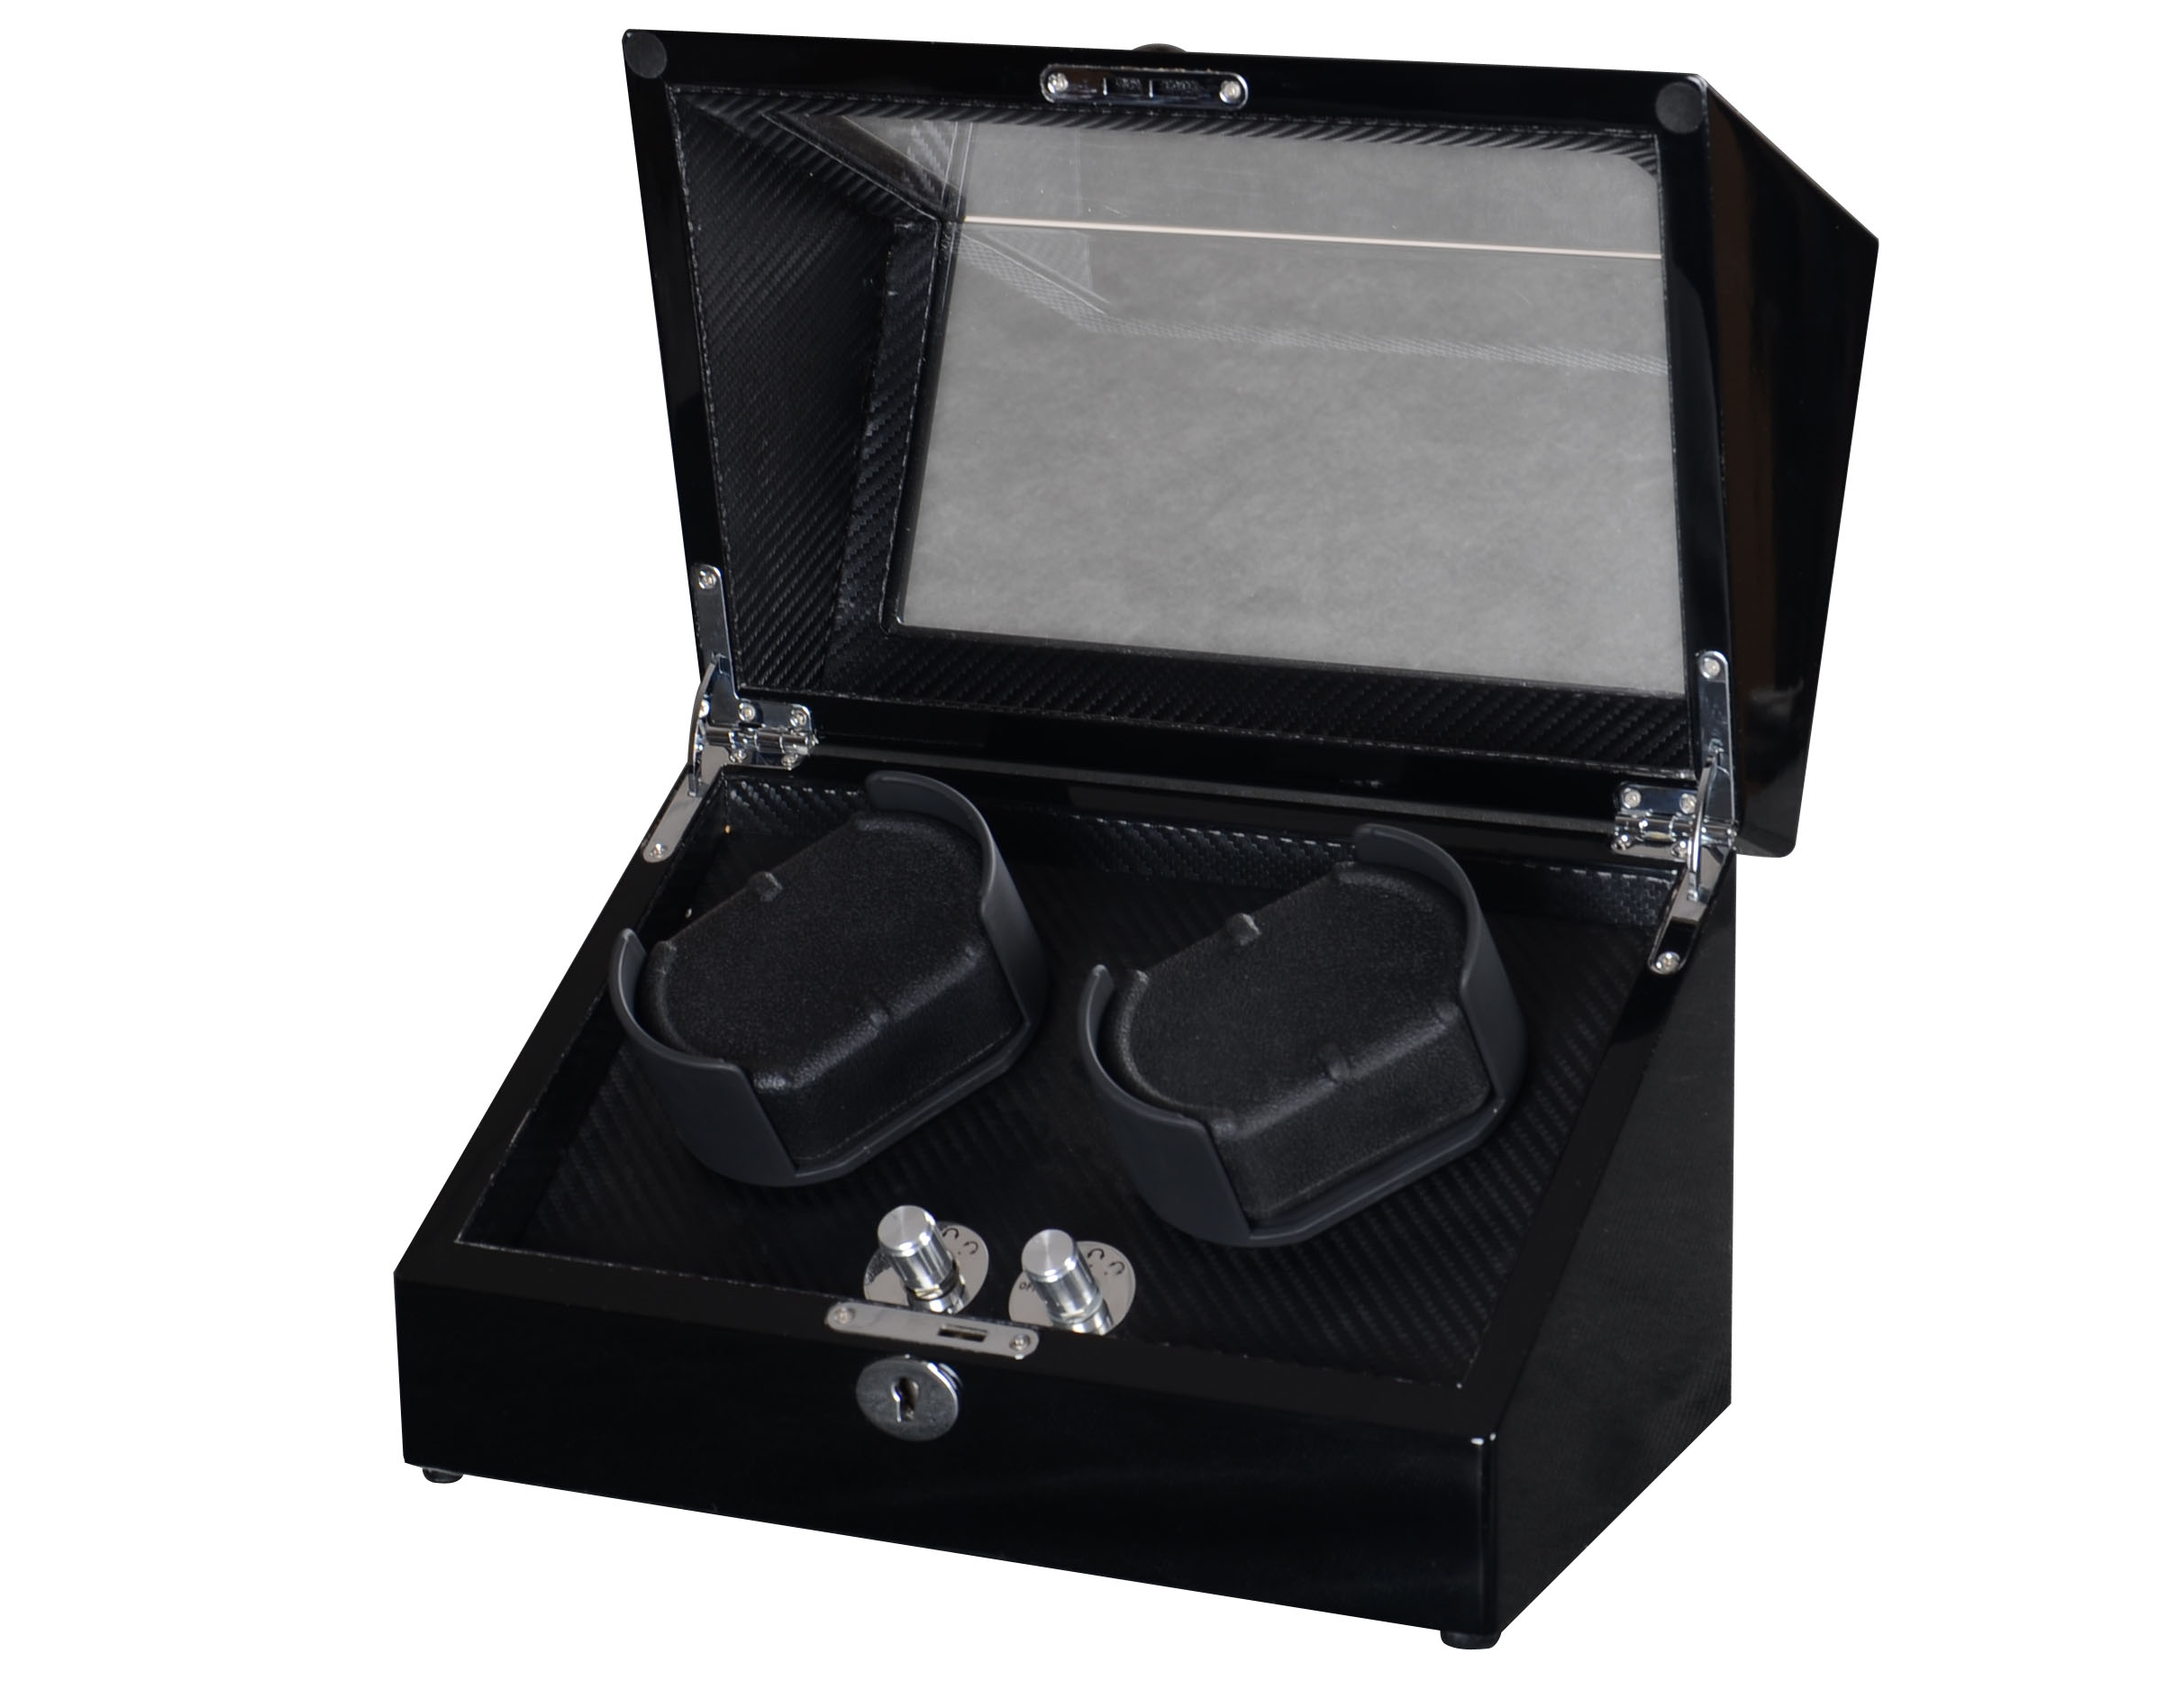 WW-8117 watch box for 4 watches